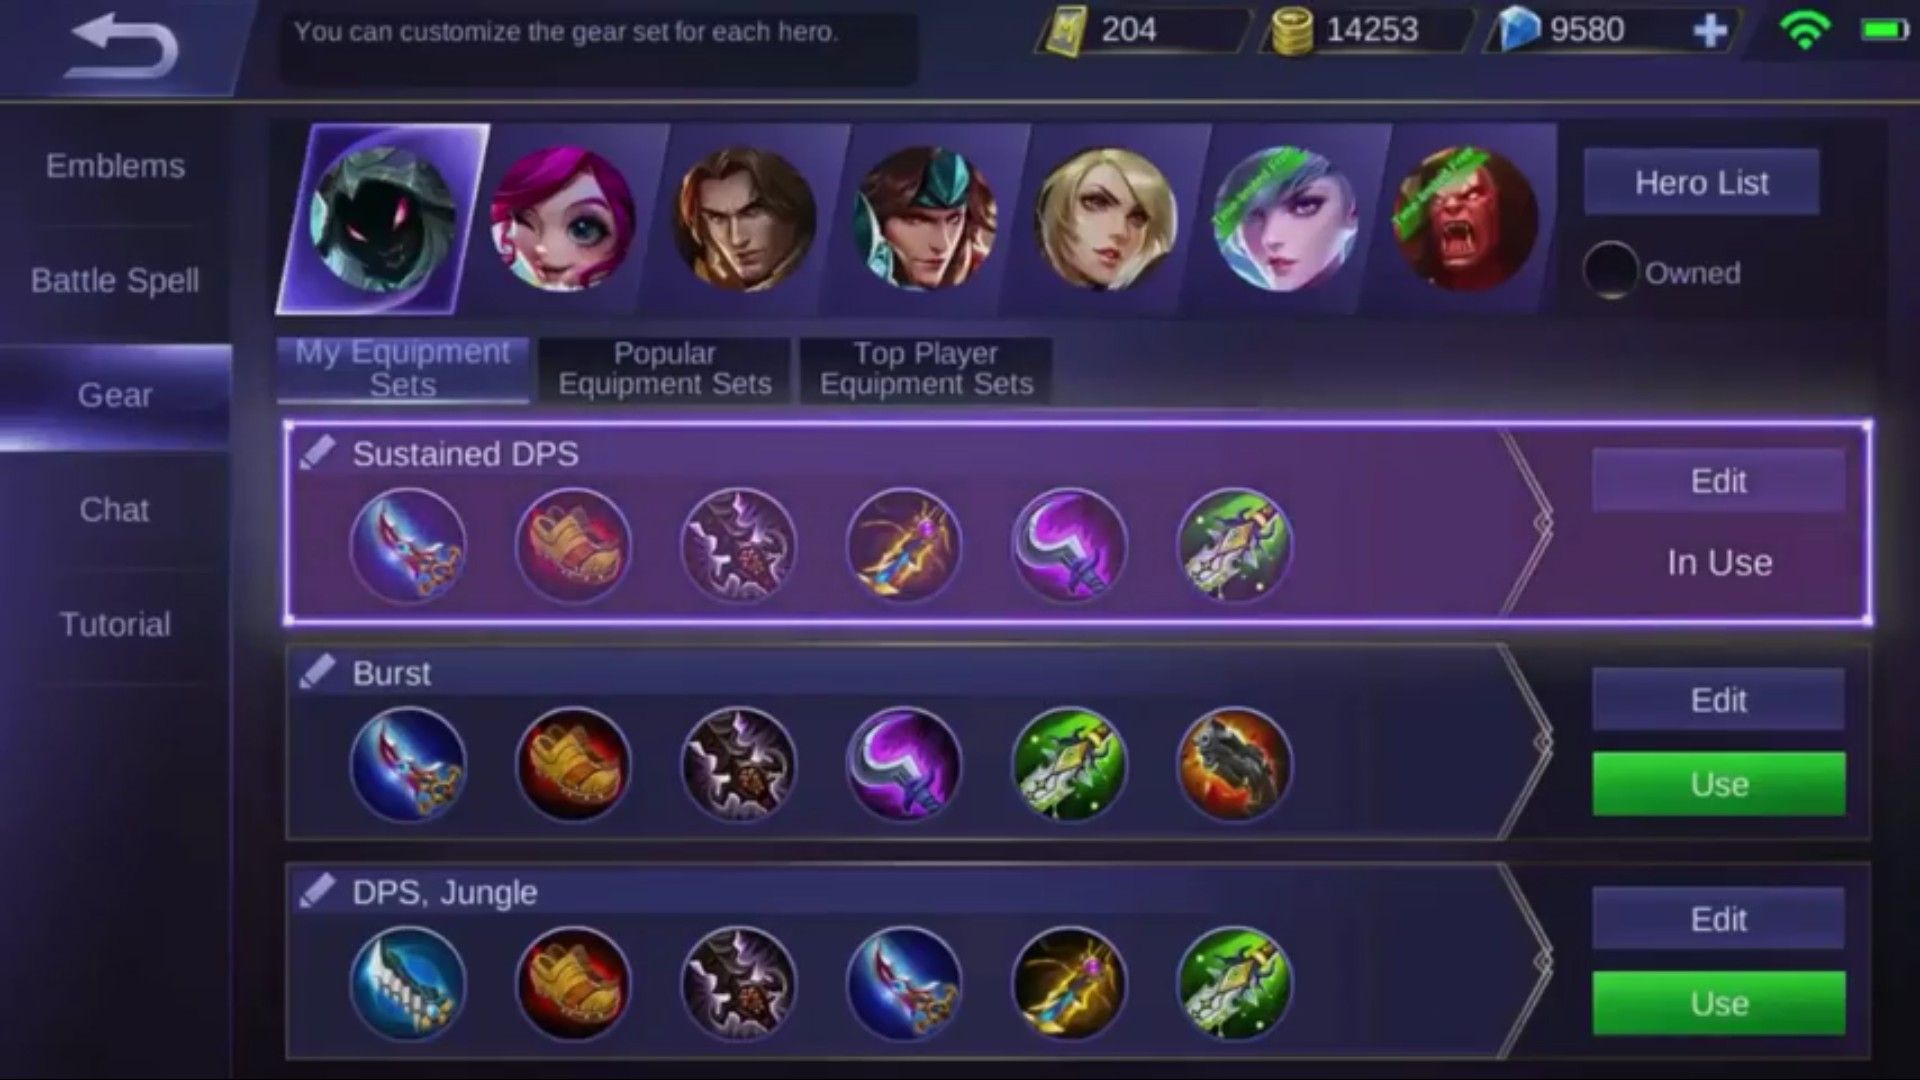 Pin By Irwan On Wallpapers Alucard Mobile Legends The Legend Of Heroes Mobile Legends